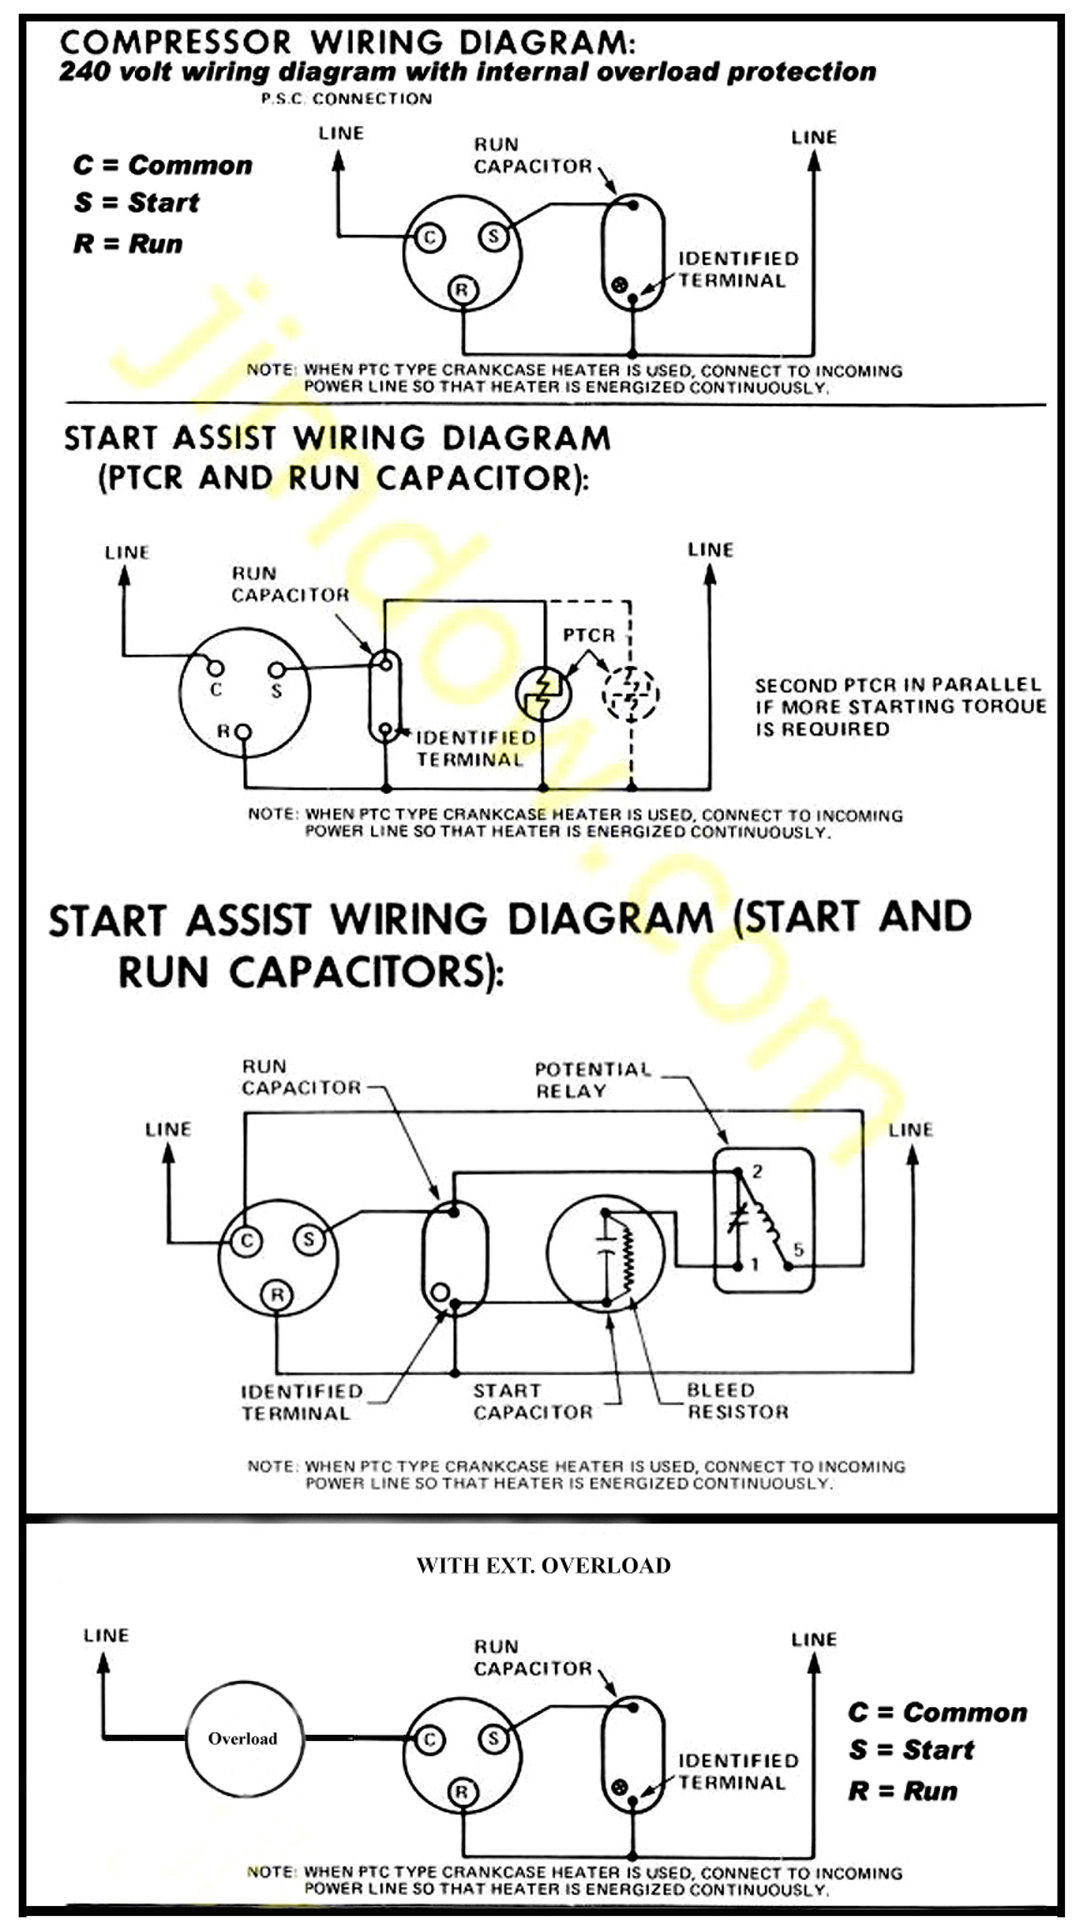 Air Conditioner Compressor Wiring : General Spud Cannon Related - Aircon Compressor Wiring Diagram